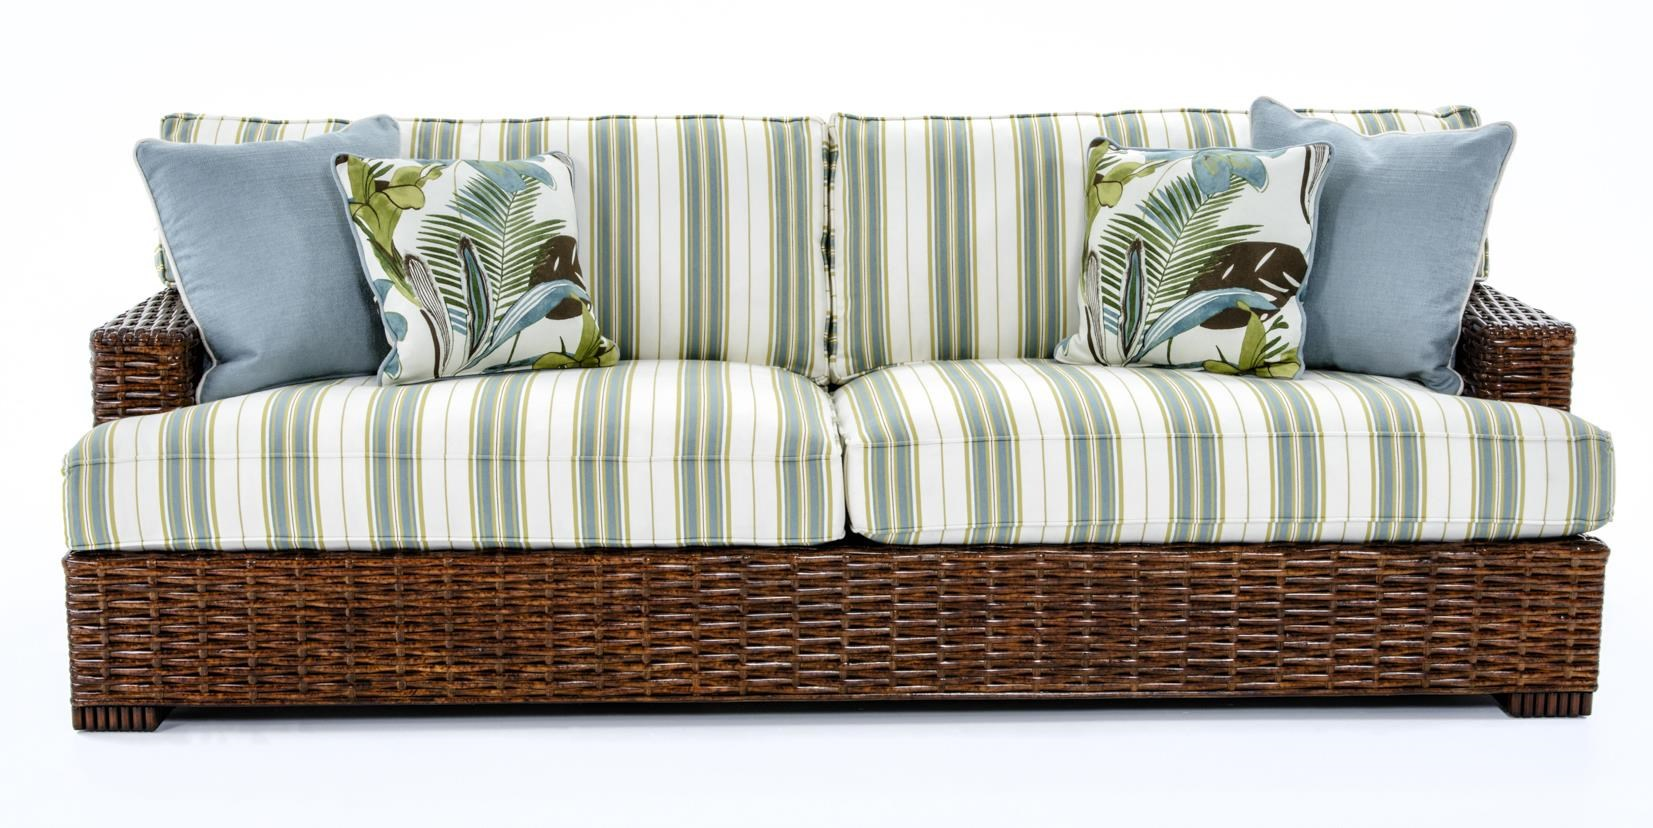 Tommy Bahama Home Ocean Club Salina Sofa - Item Number: 1792-33 5701-61